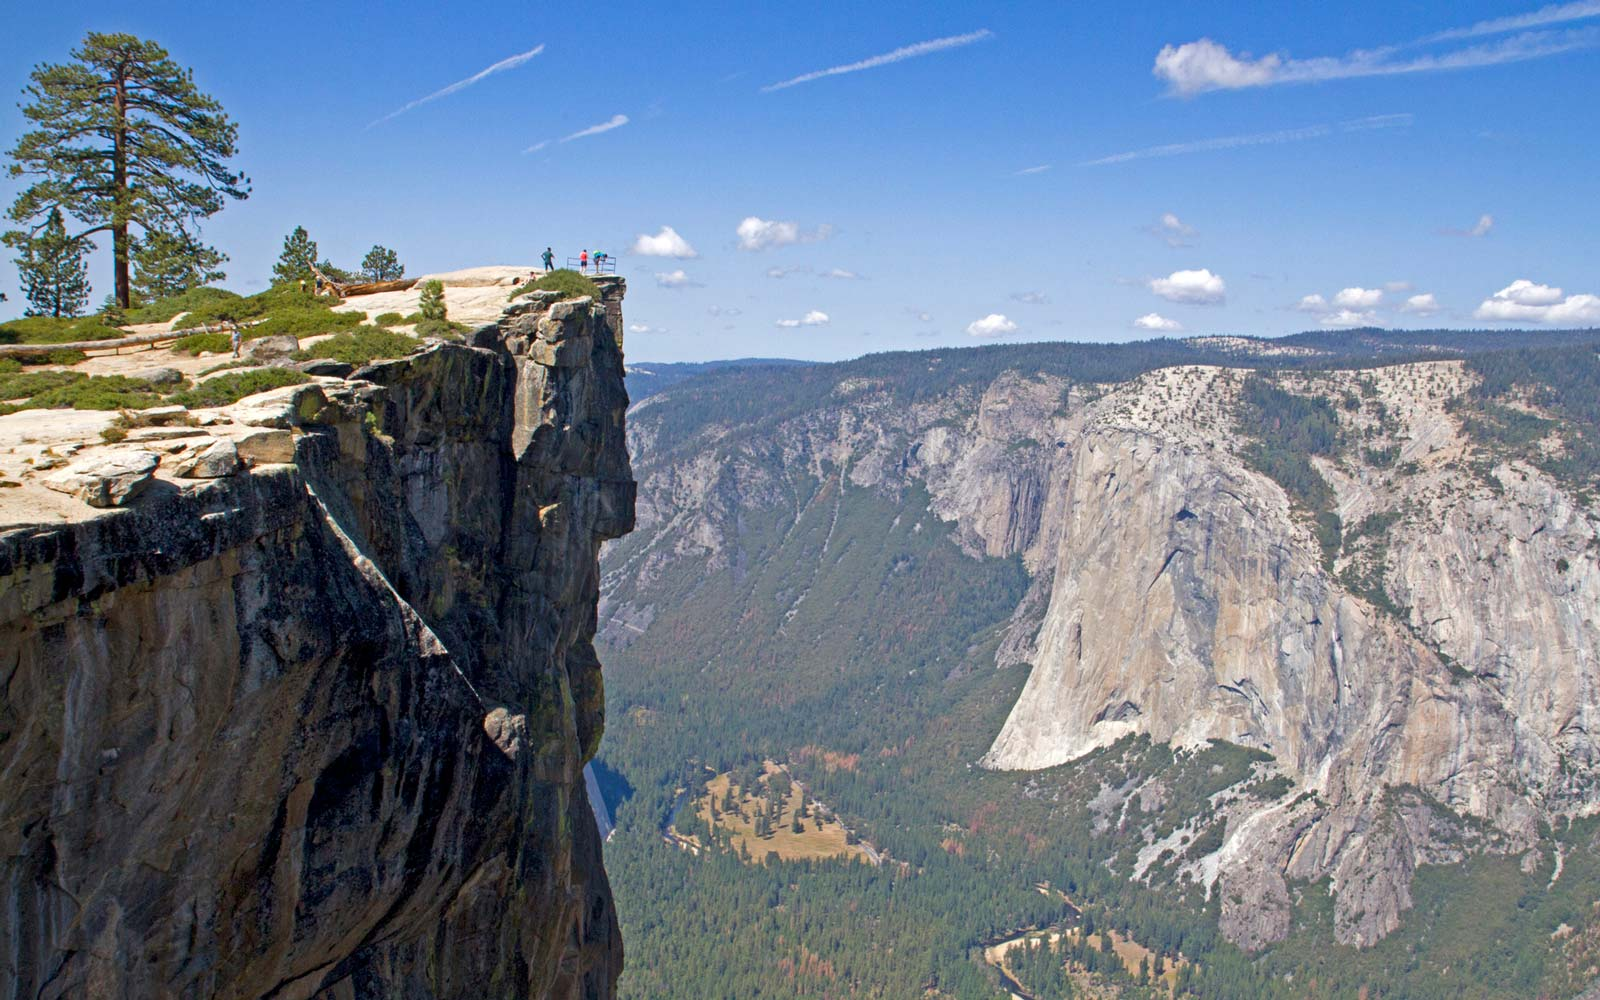 Taft Point in Yosemite National Park